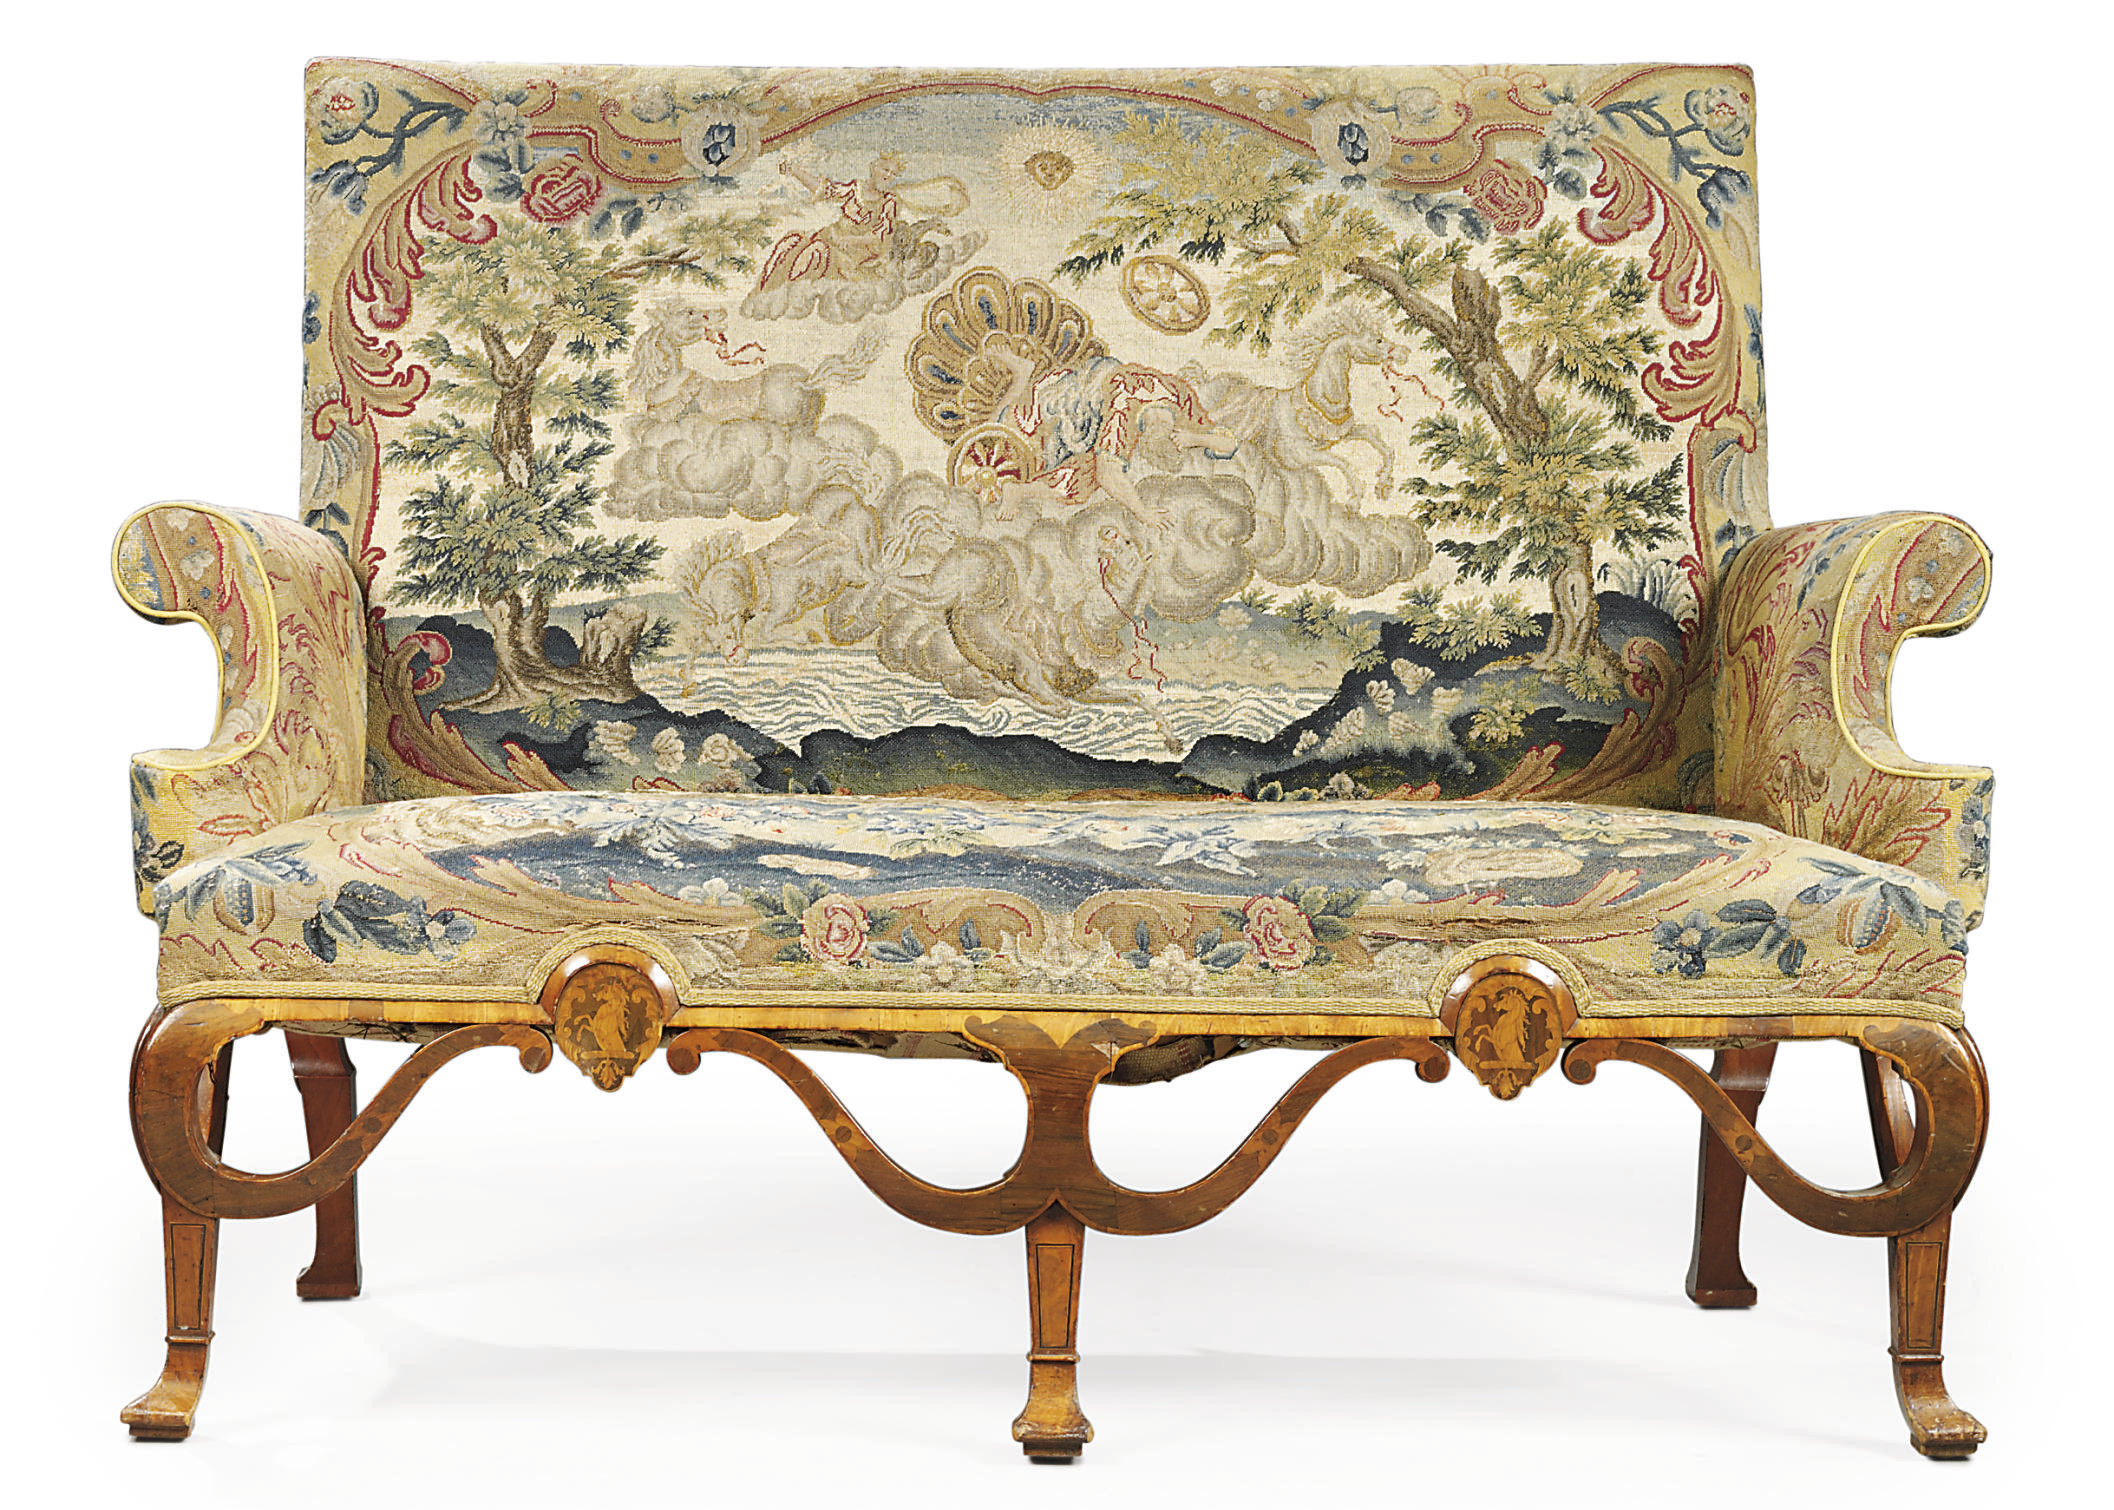 A GEORGE I PADOUK, WALNUT, MARQUETRY AND NEEDLEWORK SOFA